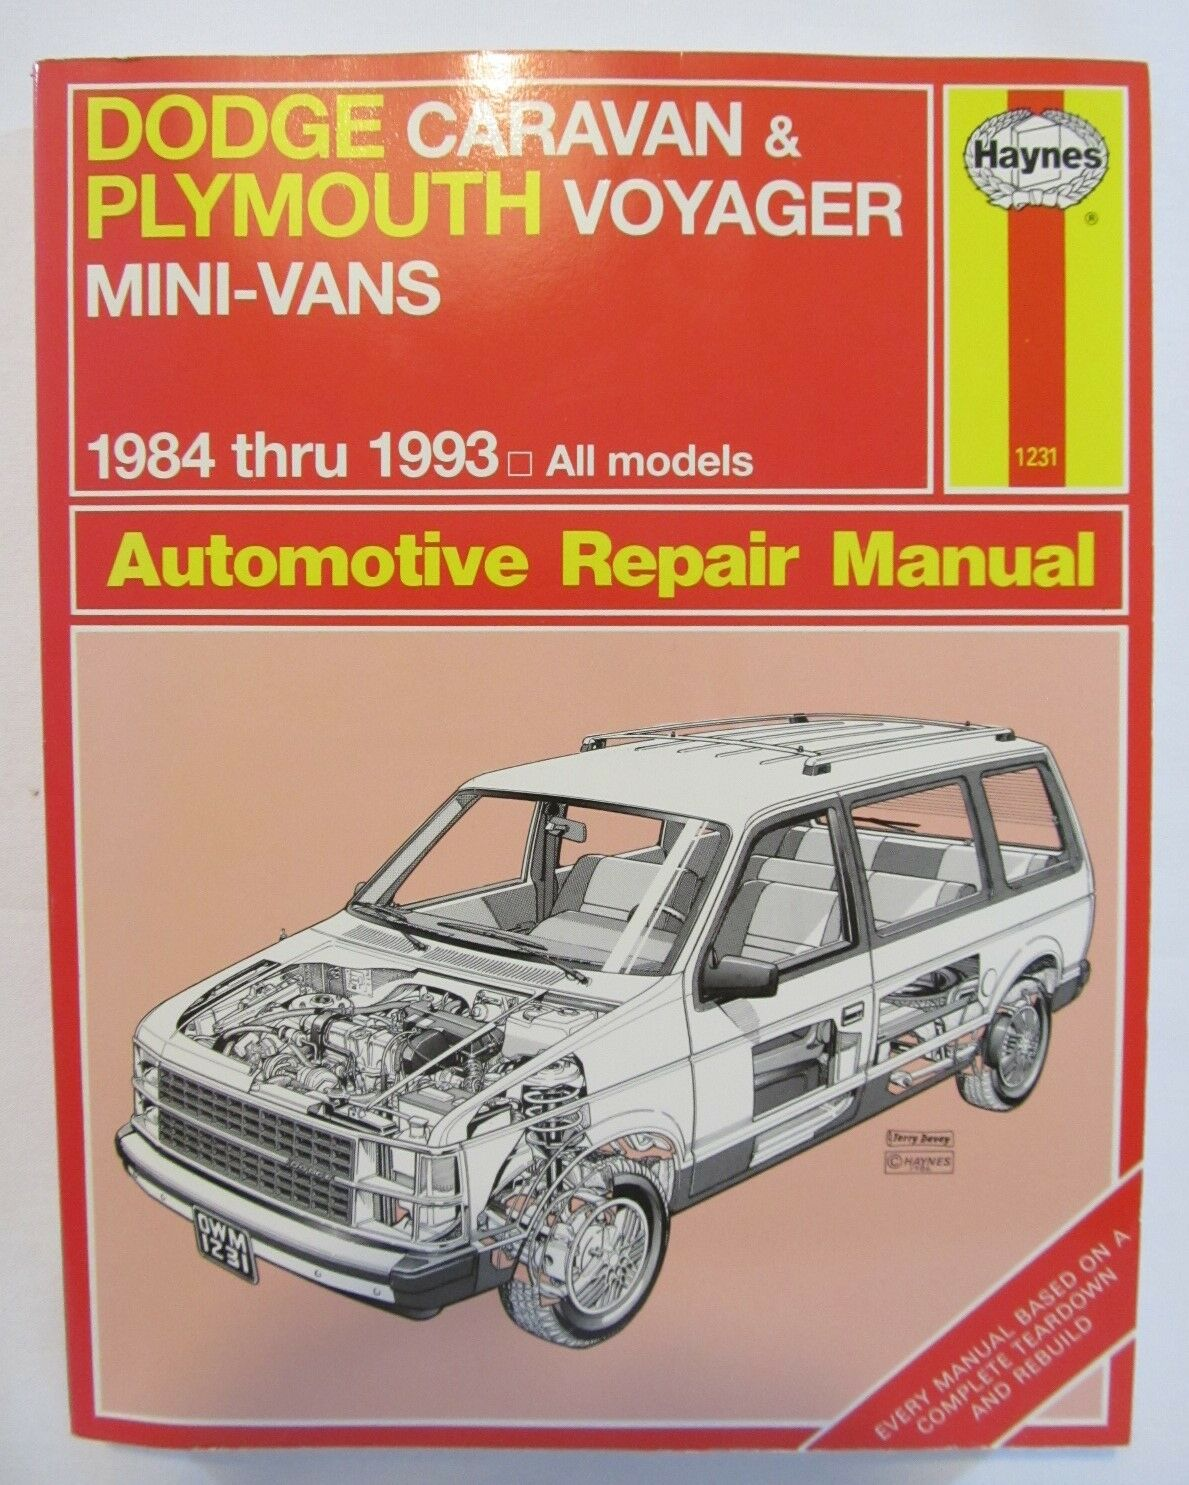 1984-1993 Dodge Caravan & Plymouth Voyager Automotive Repair Manual Haynes  1231 | eBay